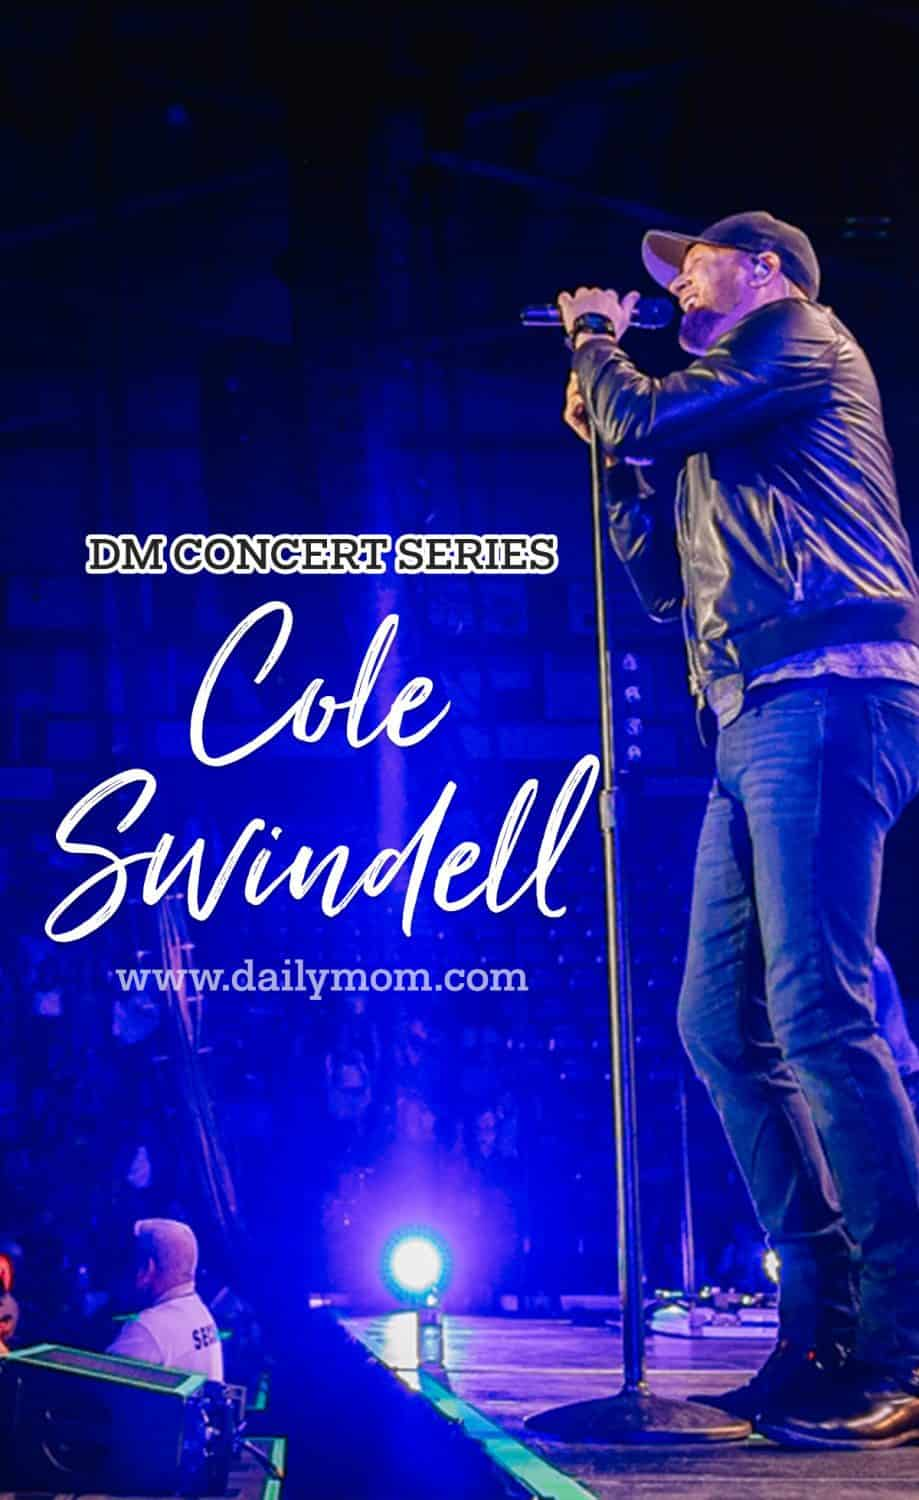 DM Concert Series: Cole Swindell 27 Daily Mom Parents Portal